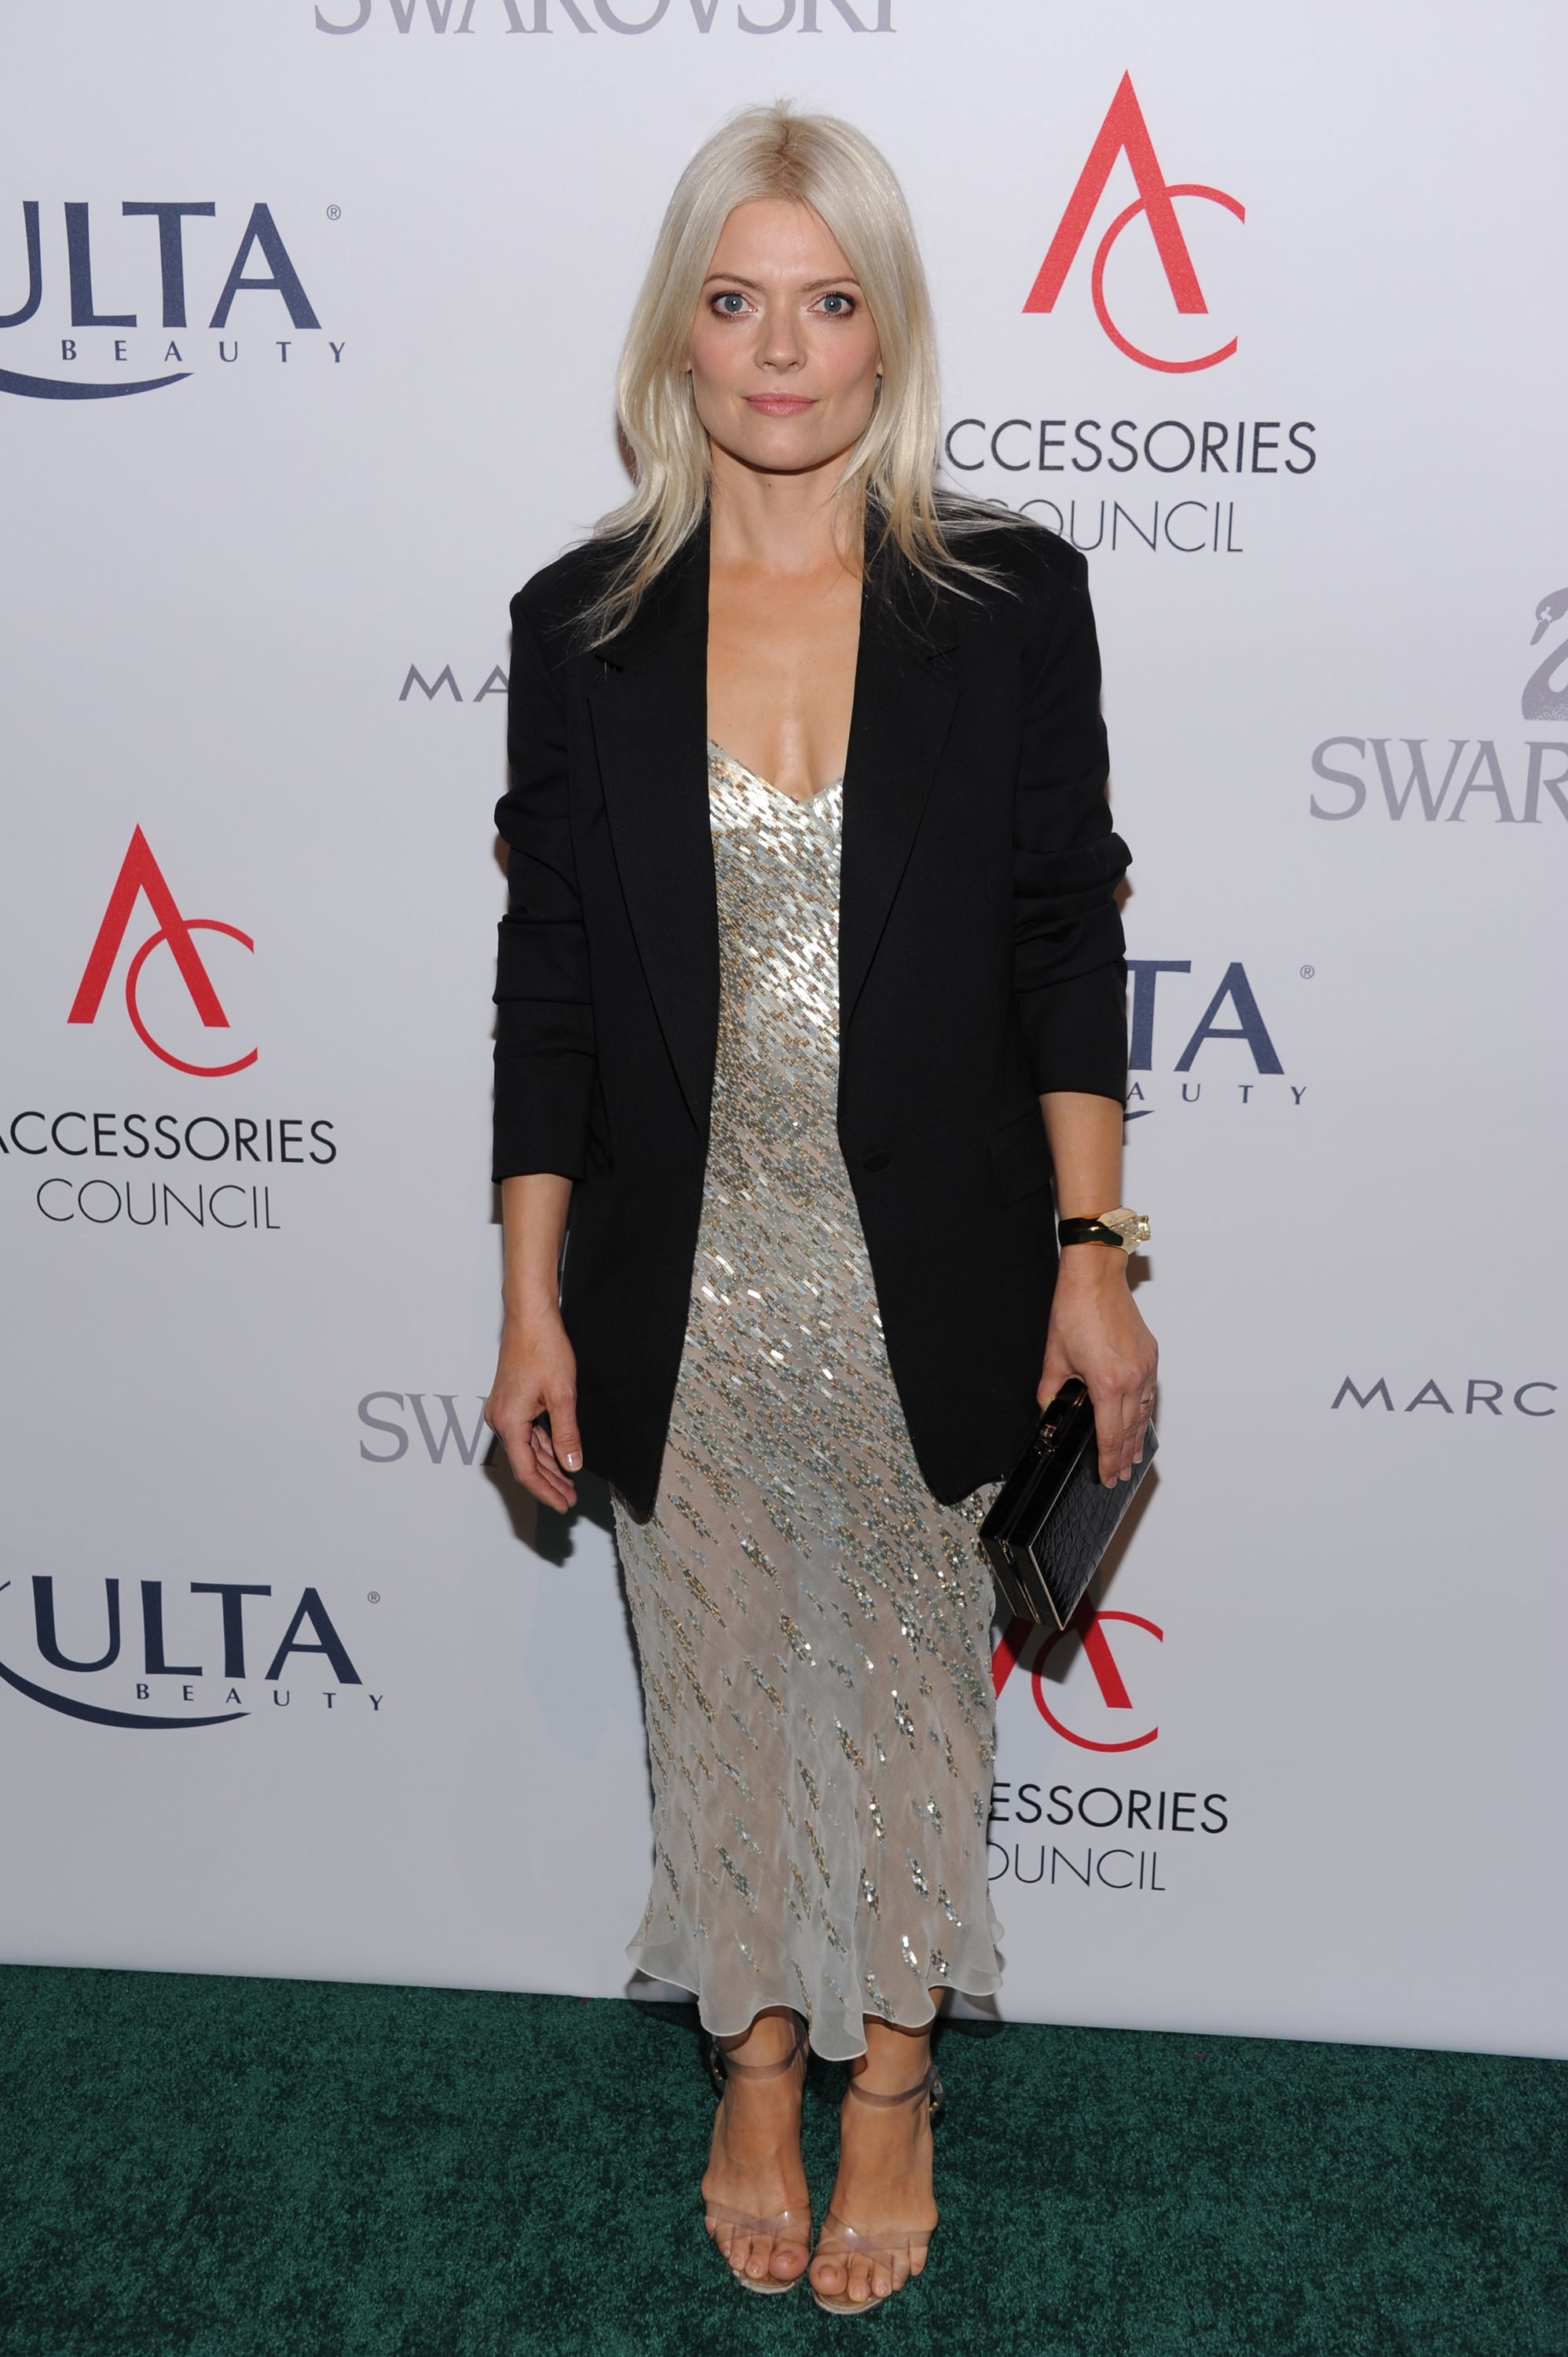 Kate Young picked up her ACE Award in a sparkling cocktail dress at New York's Cipriani.